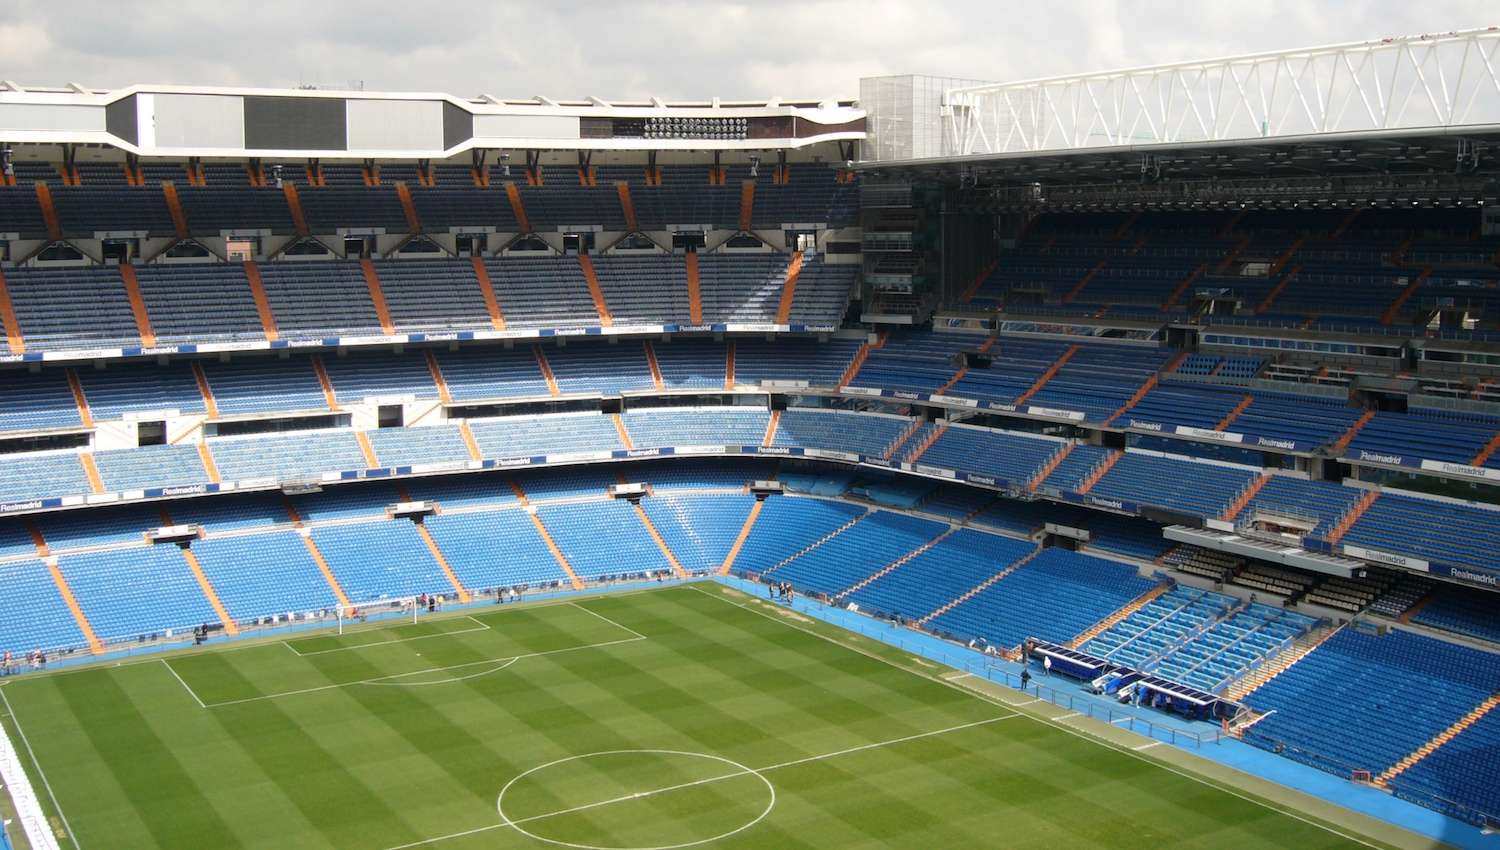 Santiago bernabeu stadium madrid book tickets tours for Puerta 38 santiago bernabeu